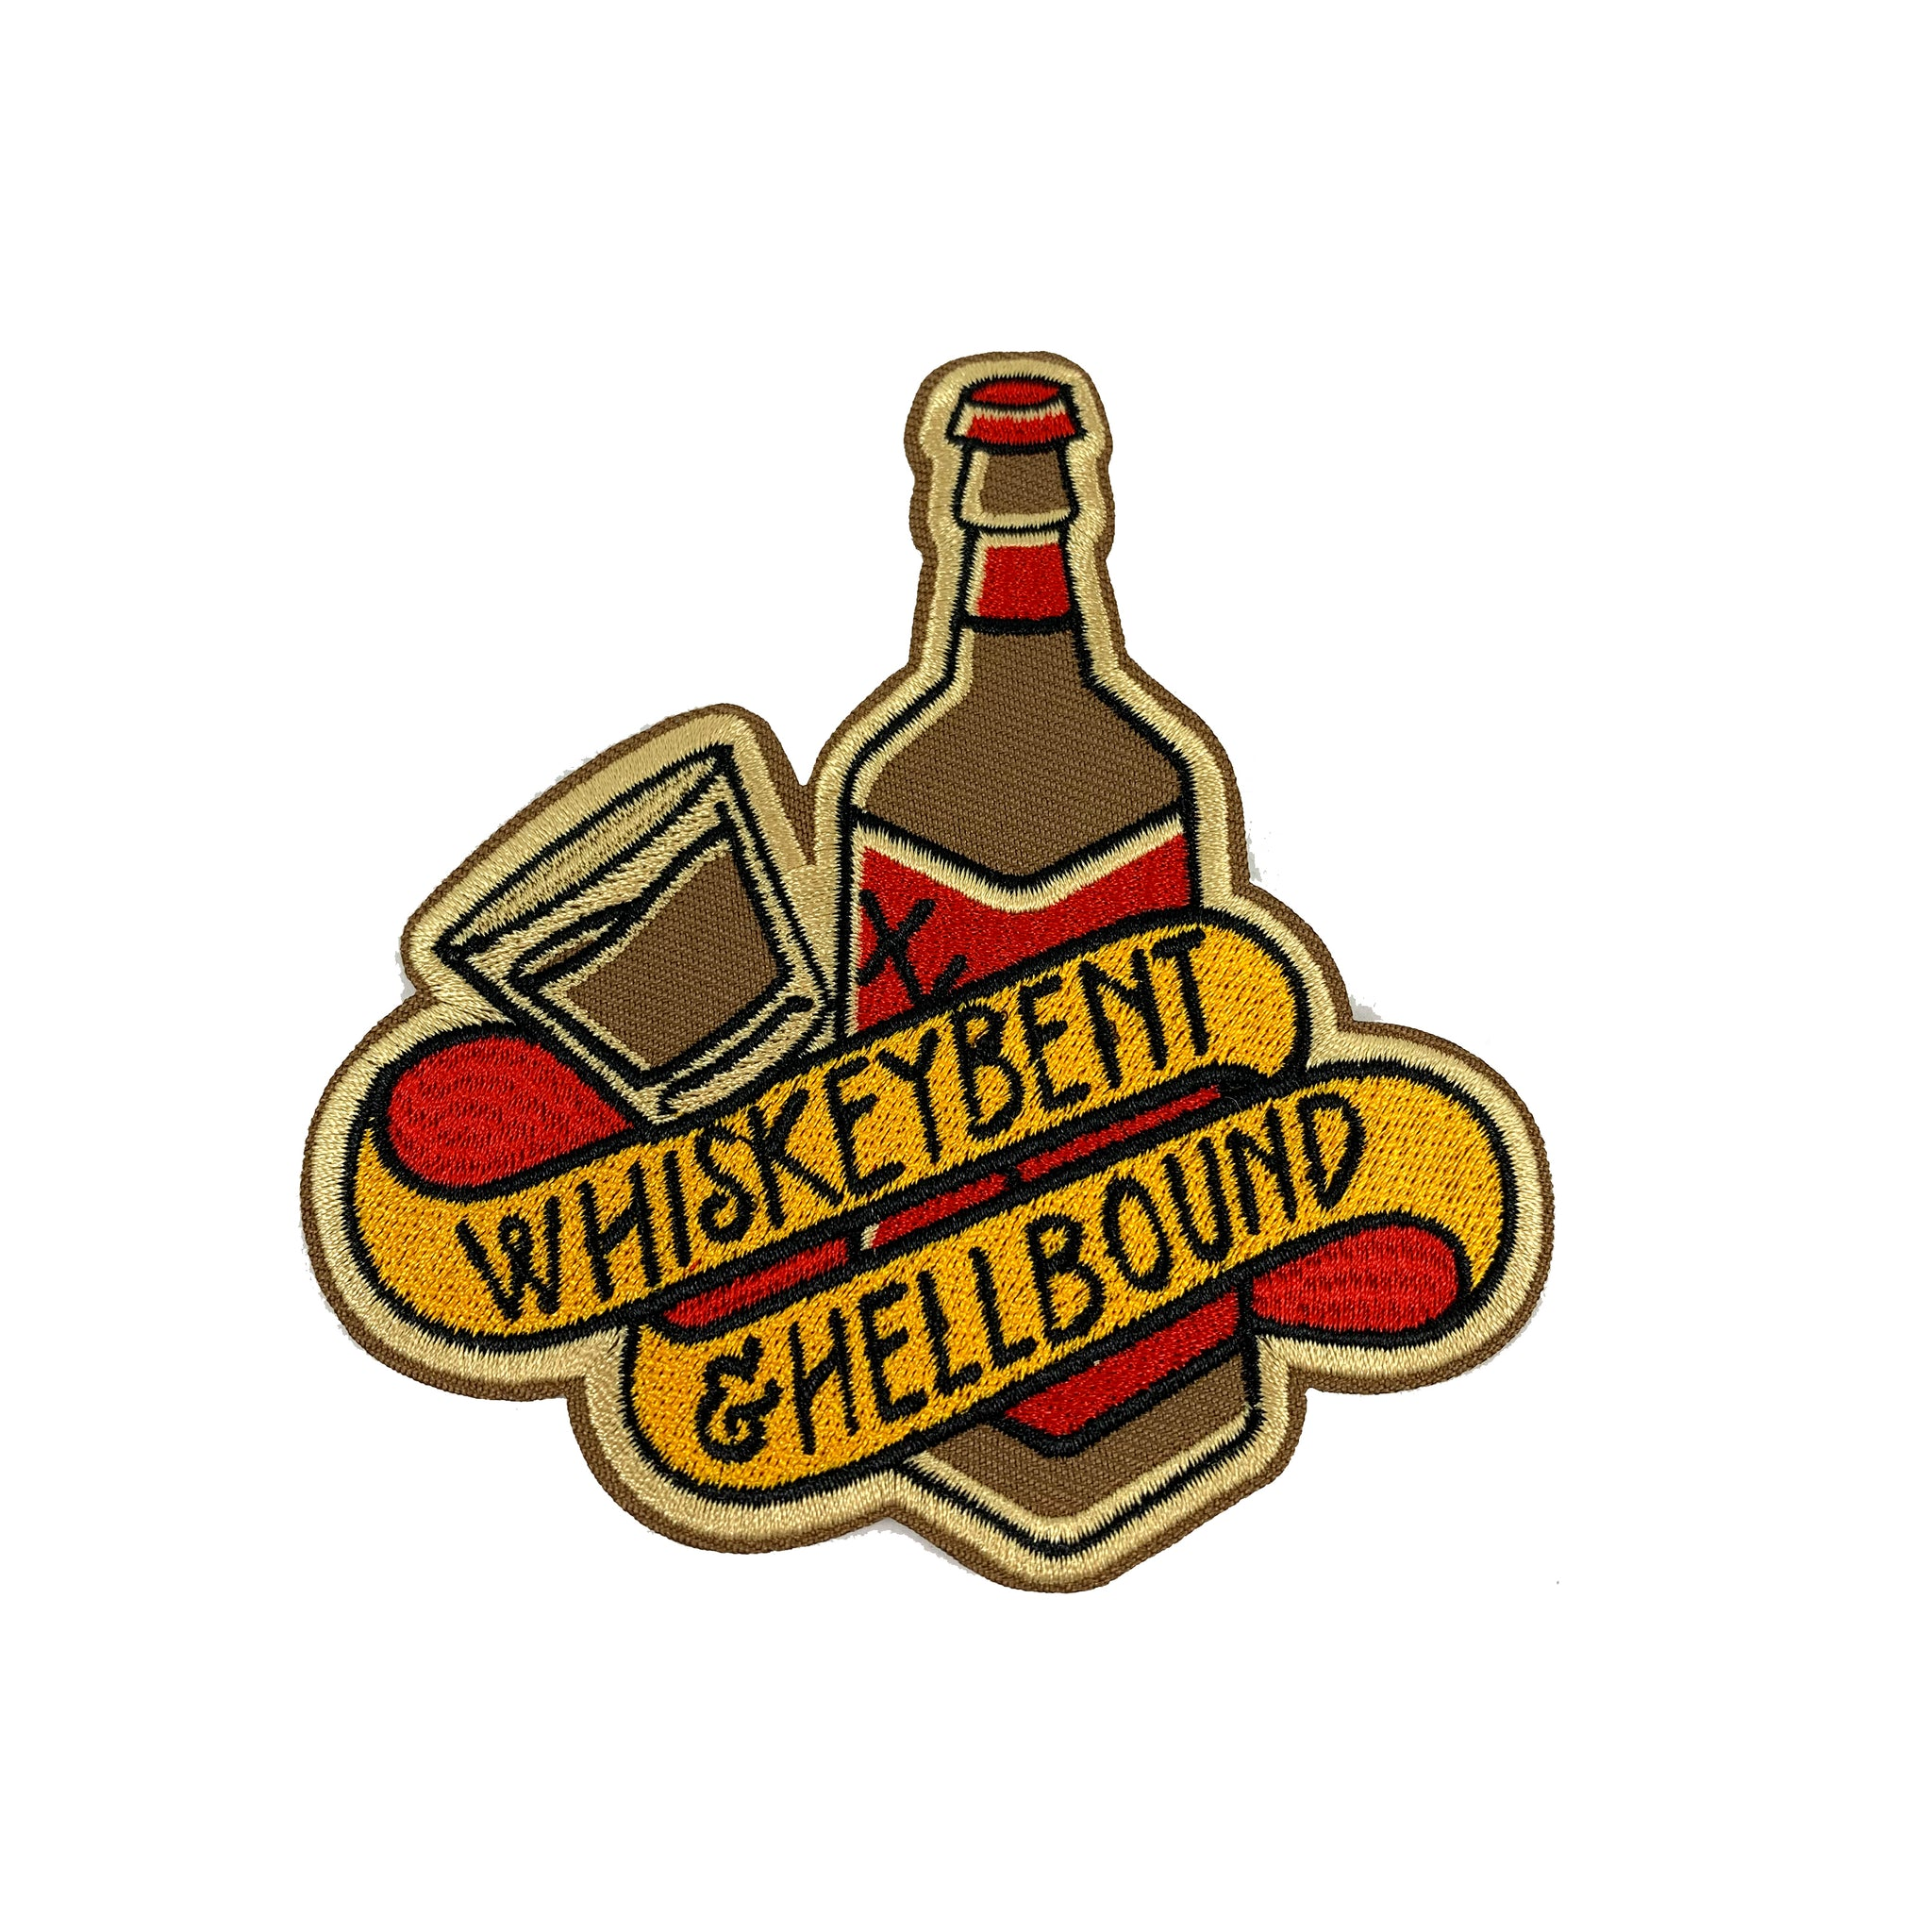 Whiskey-Bent Patch